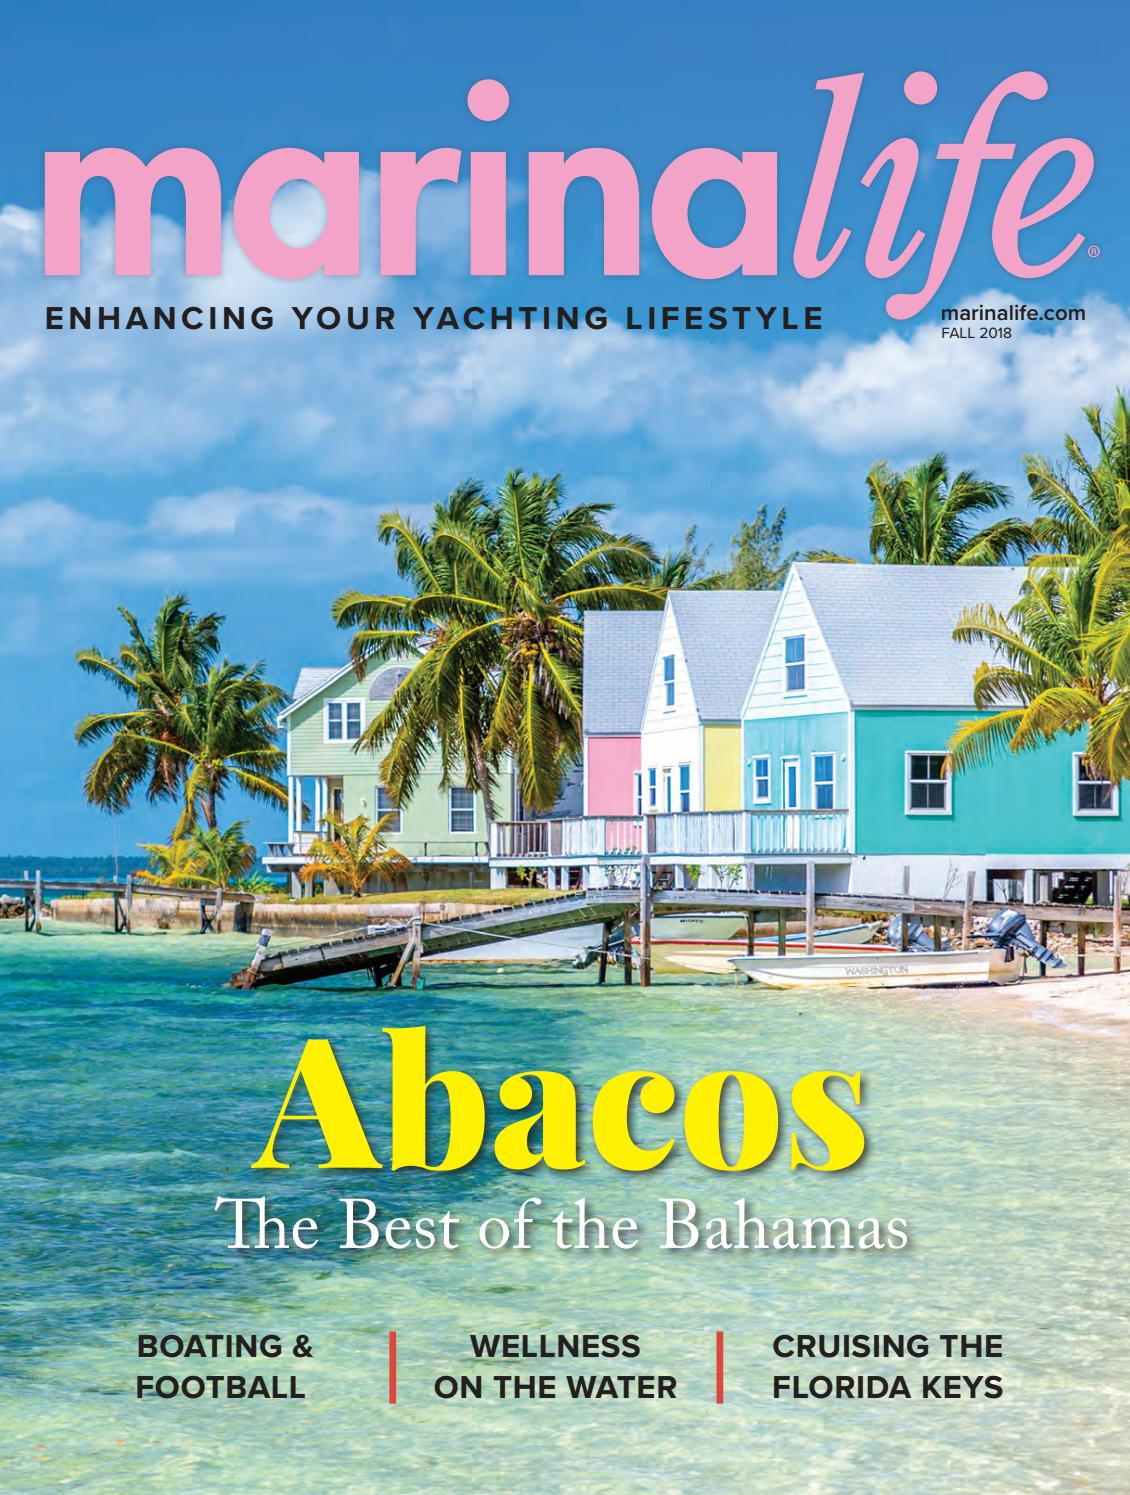 f66c8428d Marinalife magazine - Fall 2018 by Marinalife, LLC - issuu